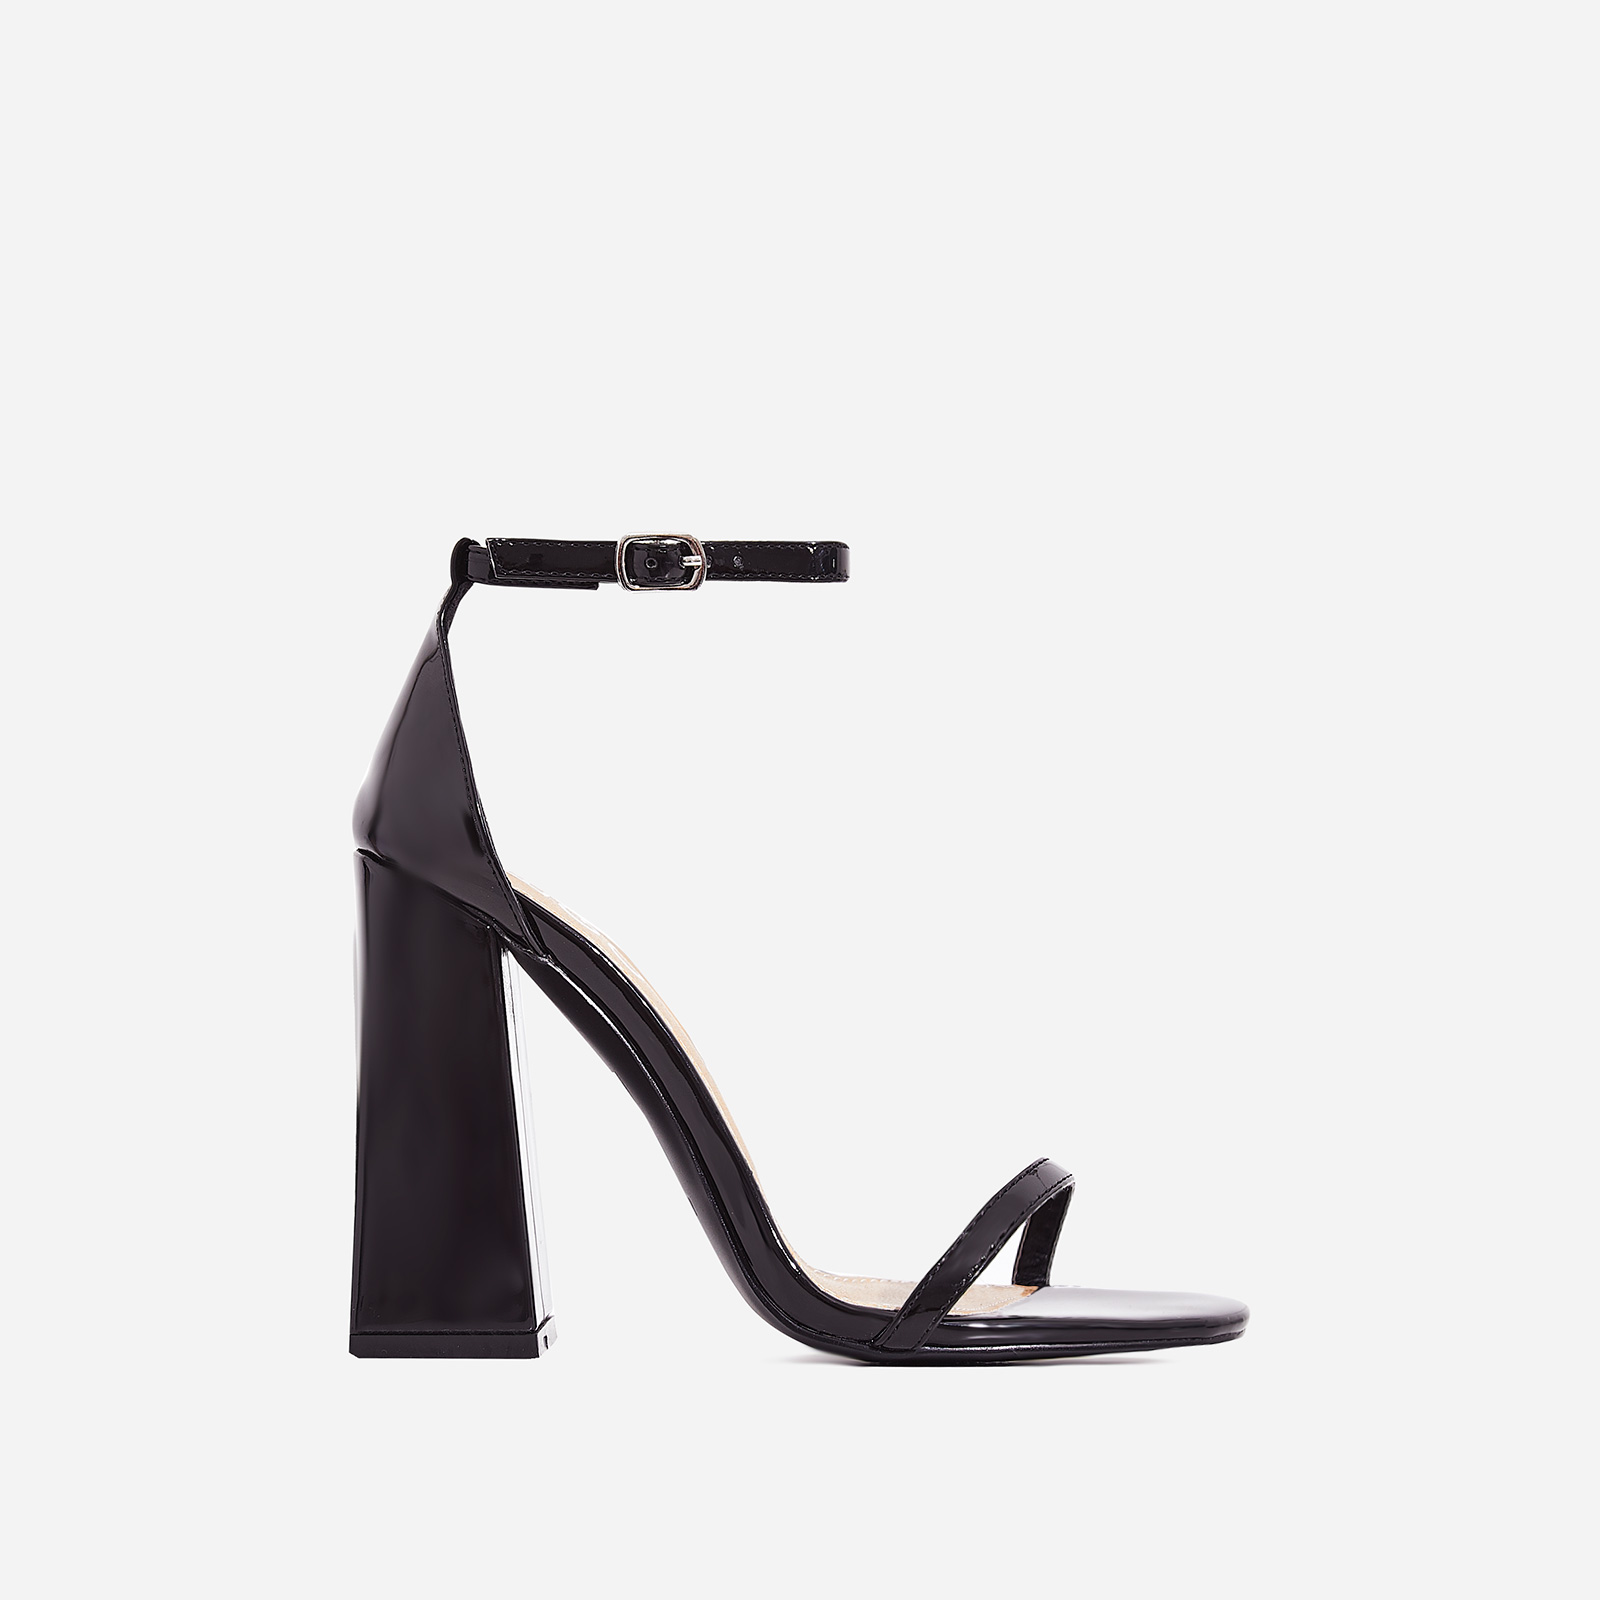 Atomic Square Block Heel  In Black Patent